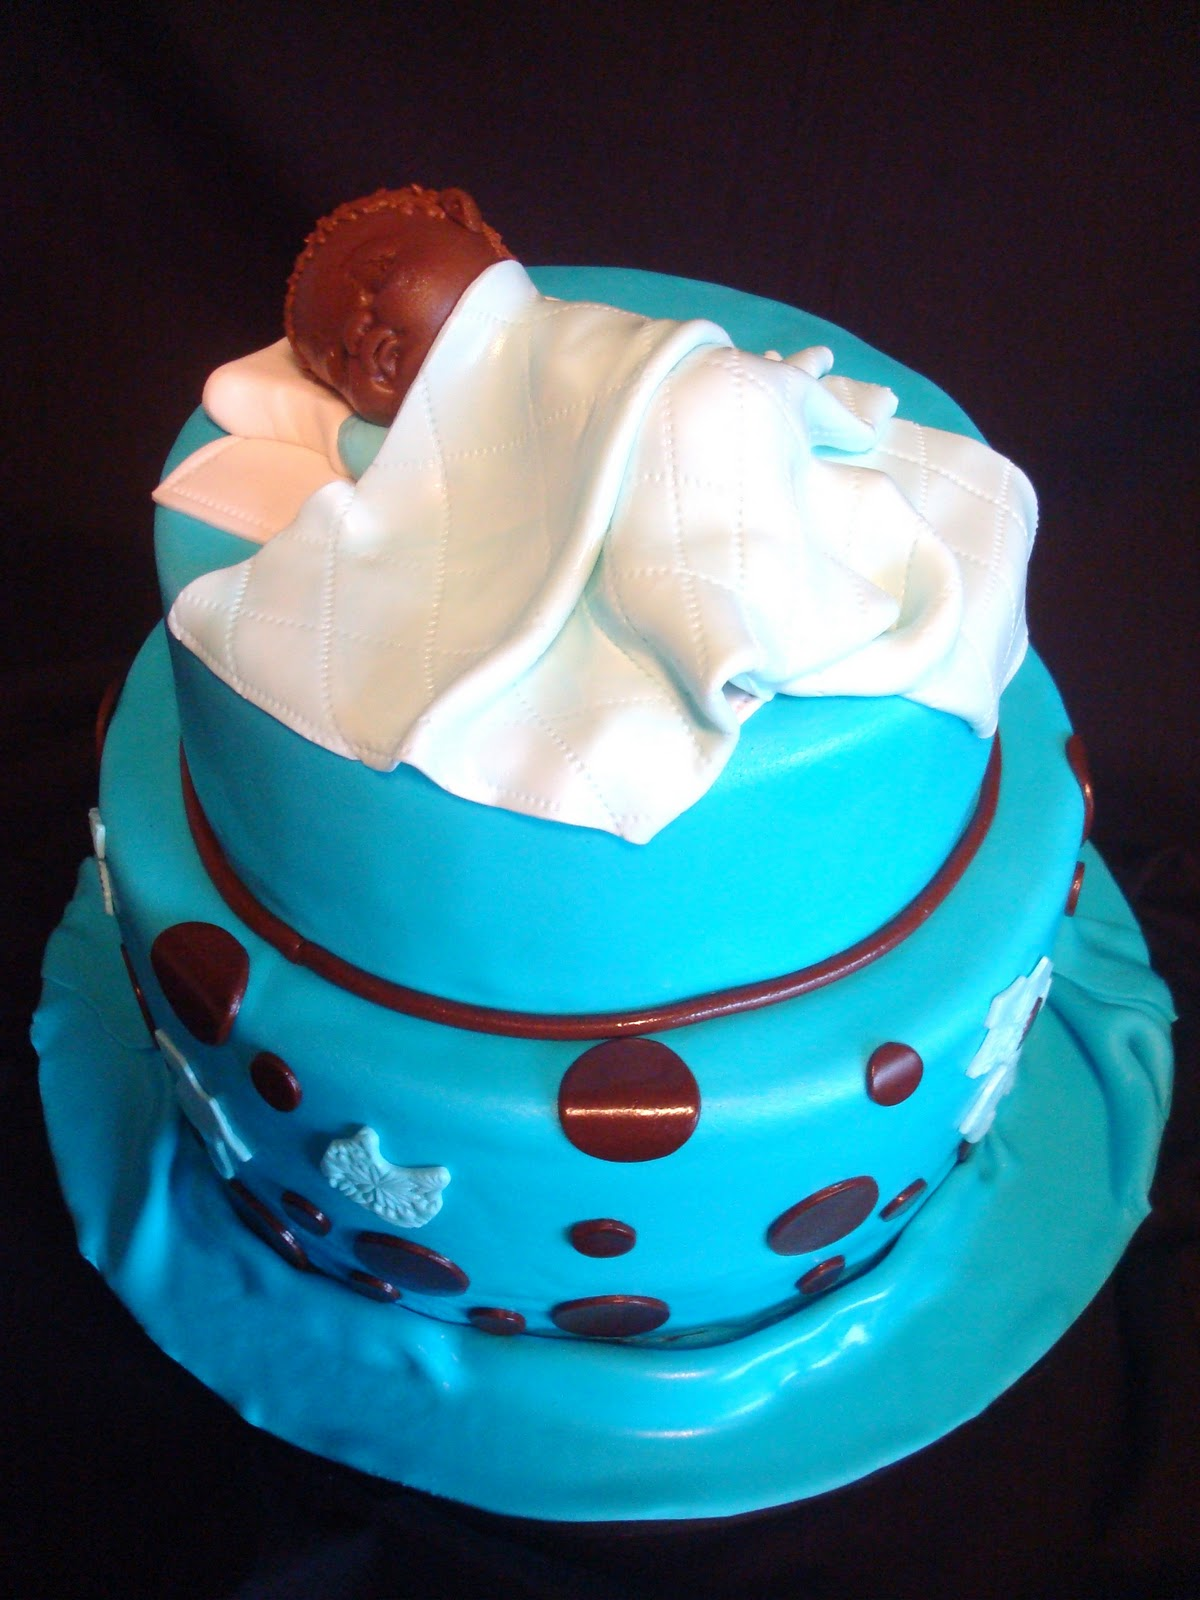 Pink Little Cake Blue and Brown Baby Shower Cake